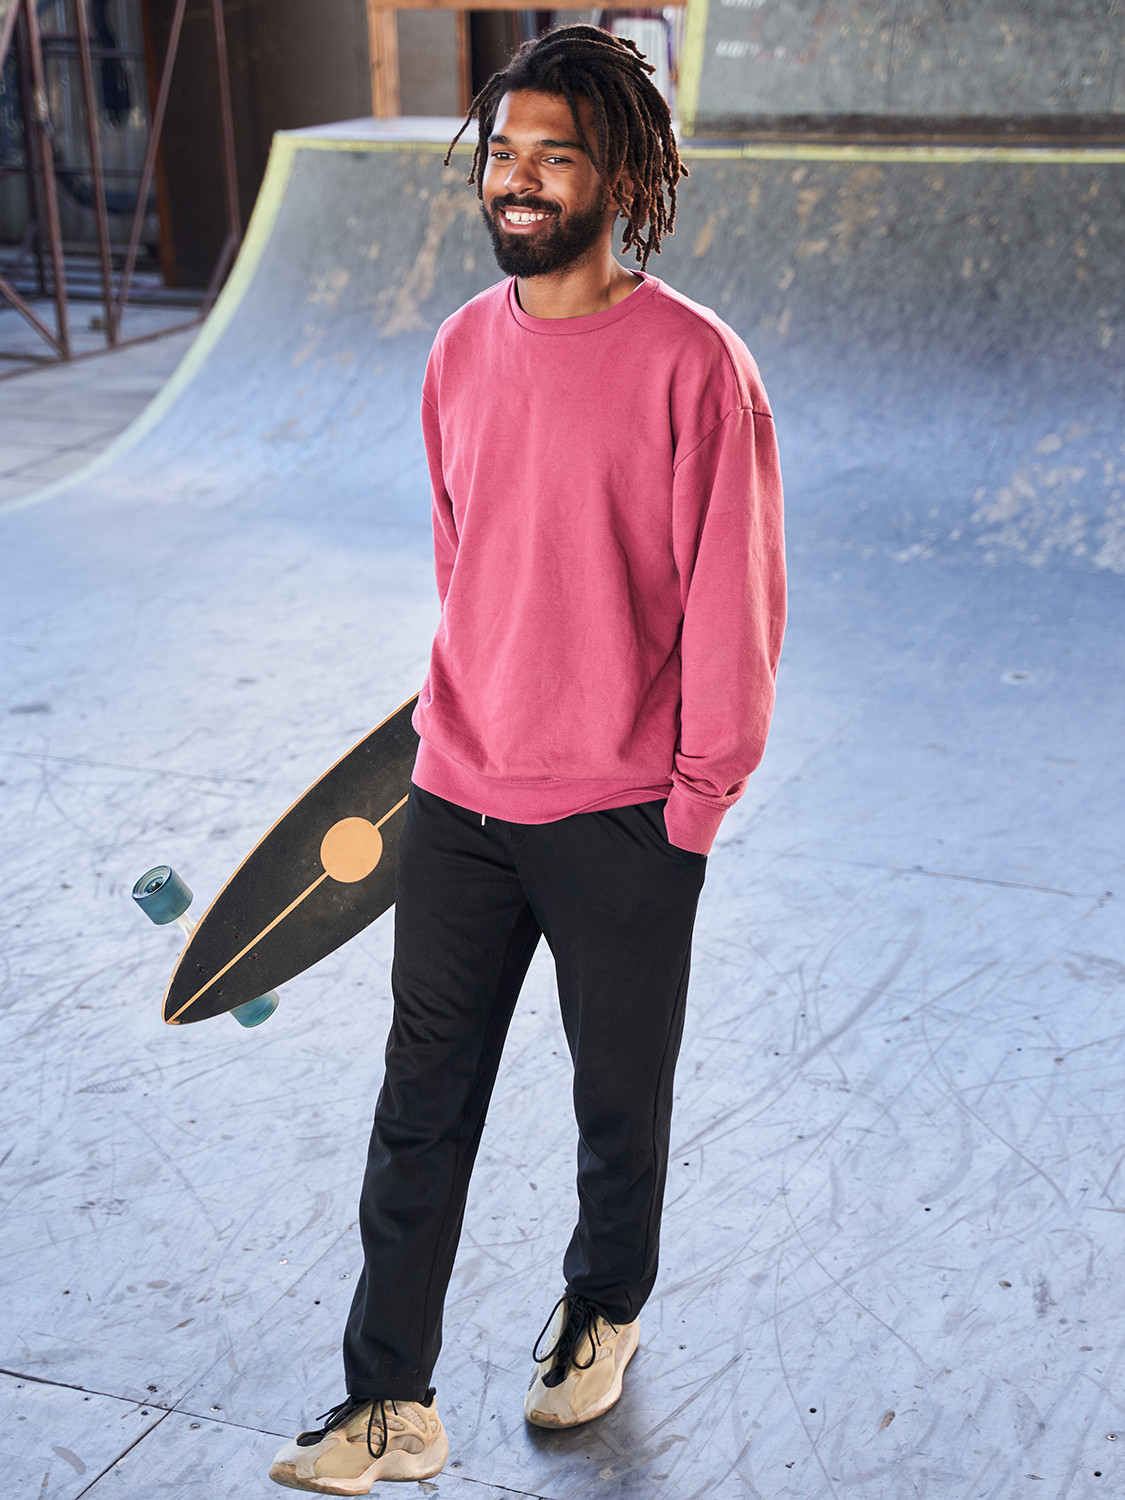 Men's outfit idea for 2021 with pink plain sweatshirt, black trackpants, neutral sneakers. Suitable for spring, summer and fall.